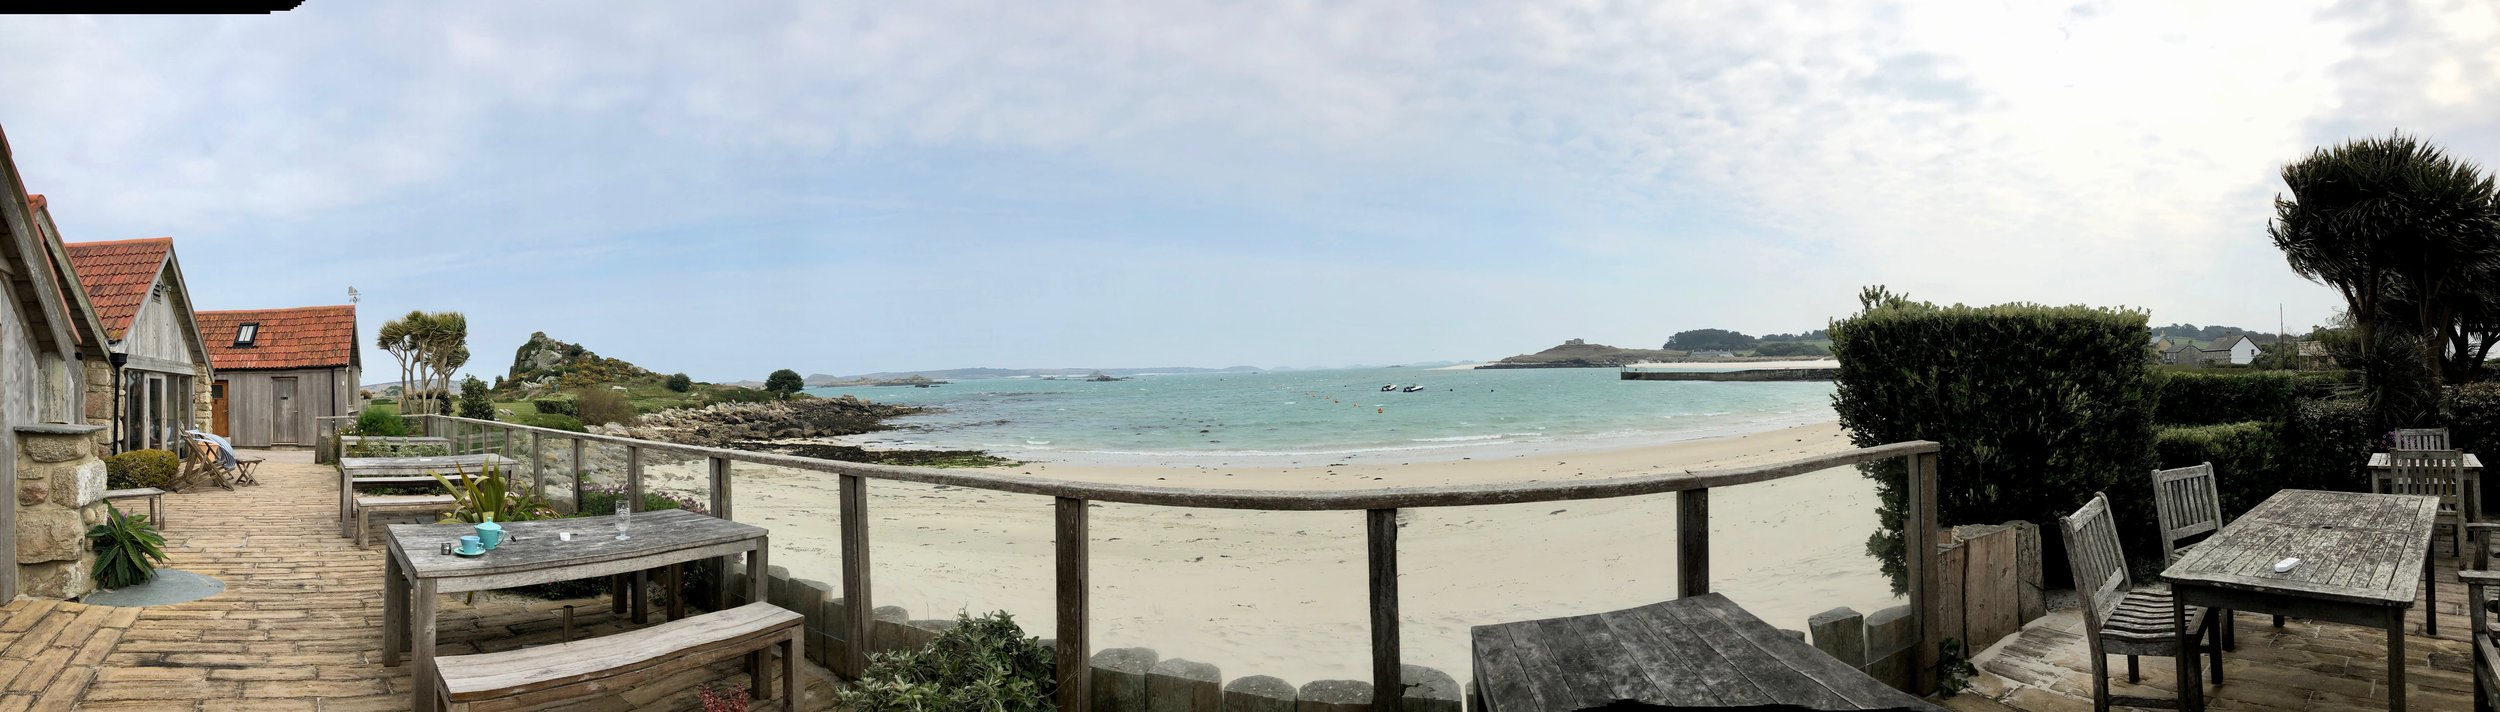 The beach view from the Ruin Beach Cafe, Tresco, Isles of Scilly.